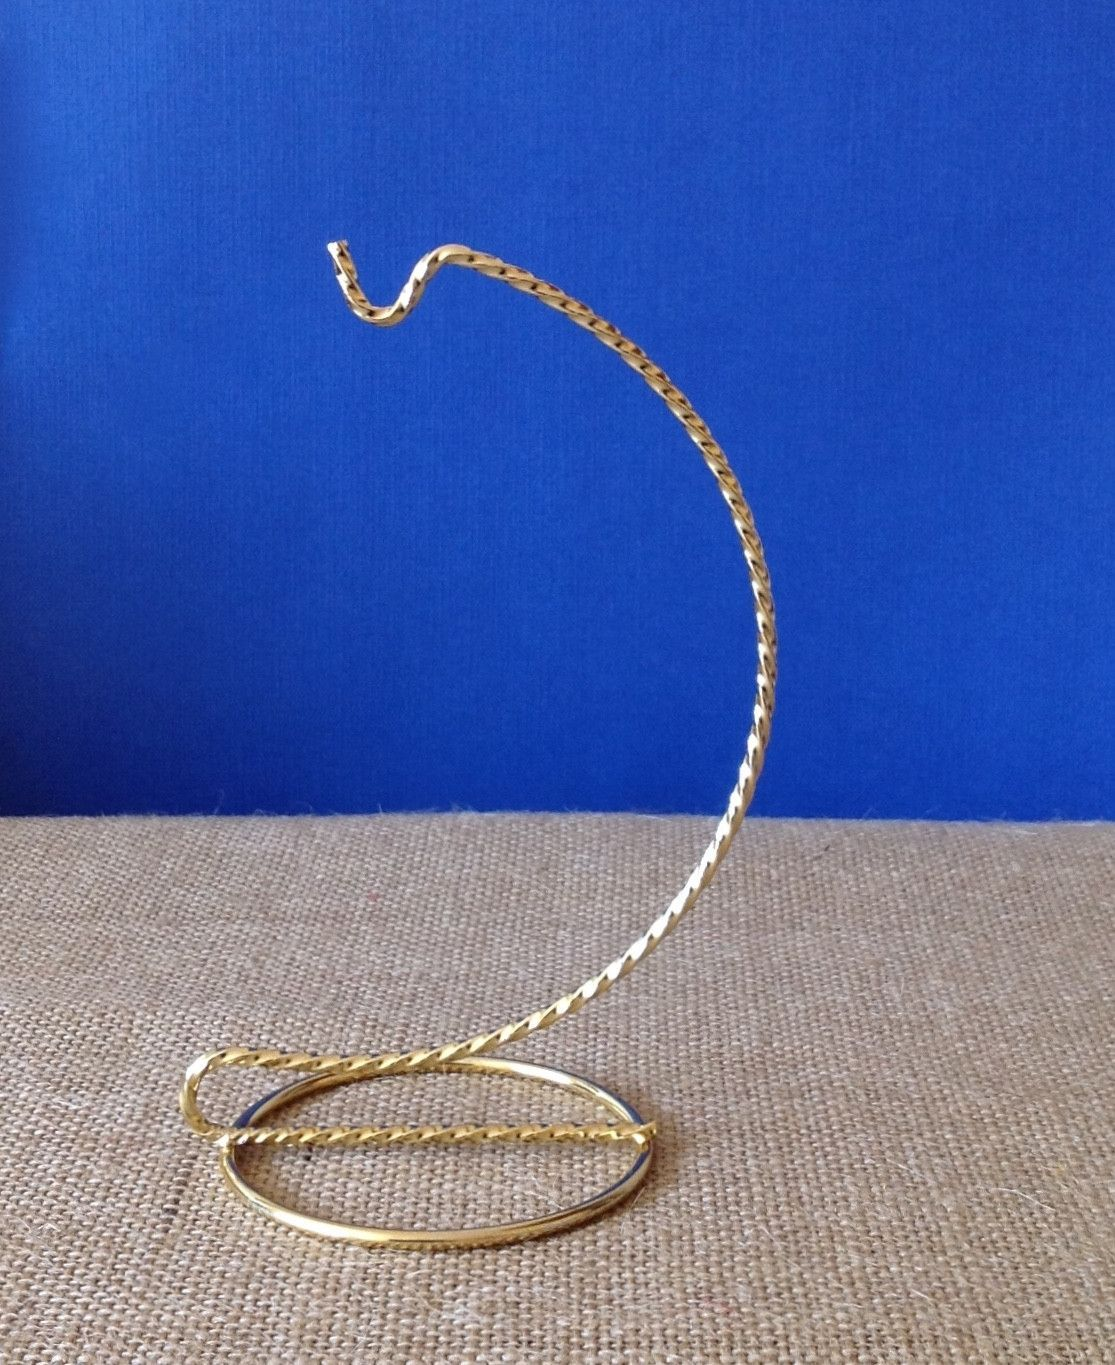 Brass ornament stand - Twisted Brass 6 Ornament Stand